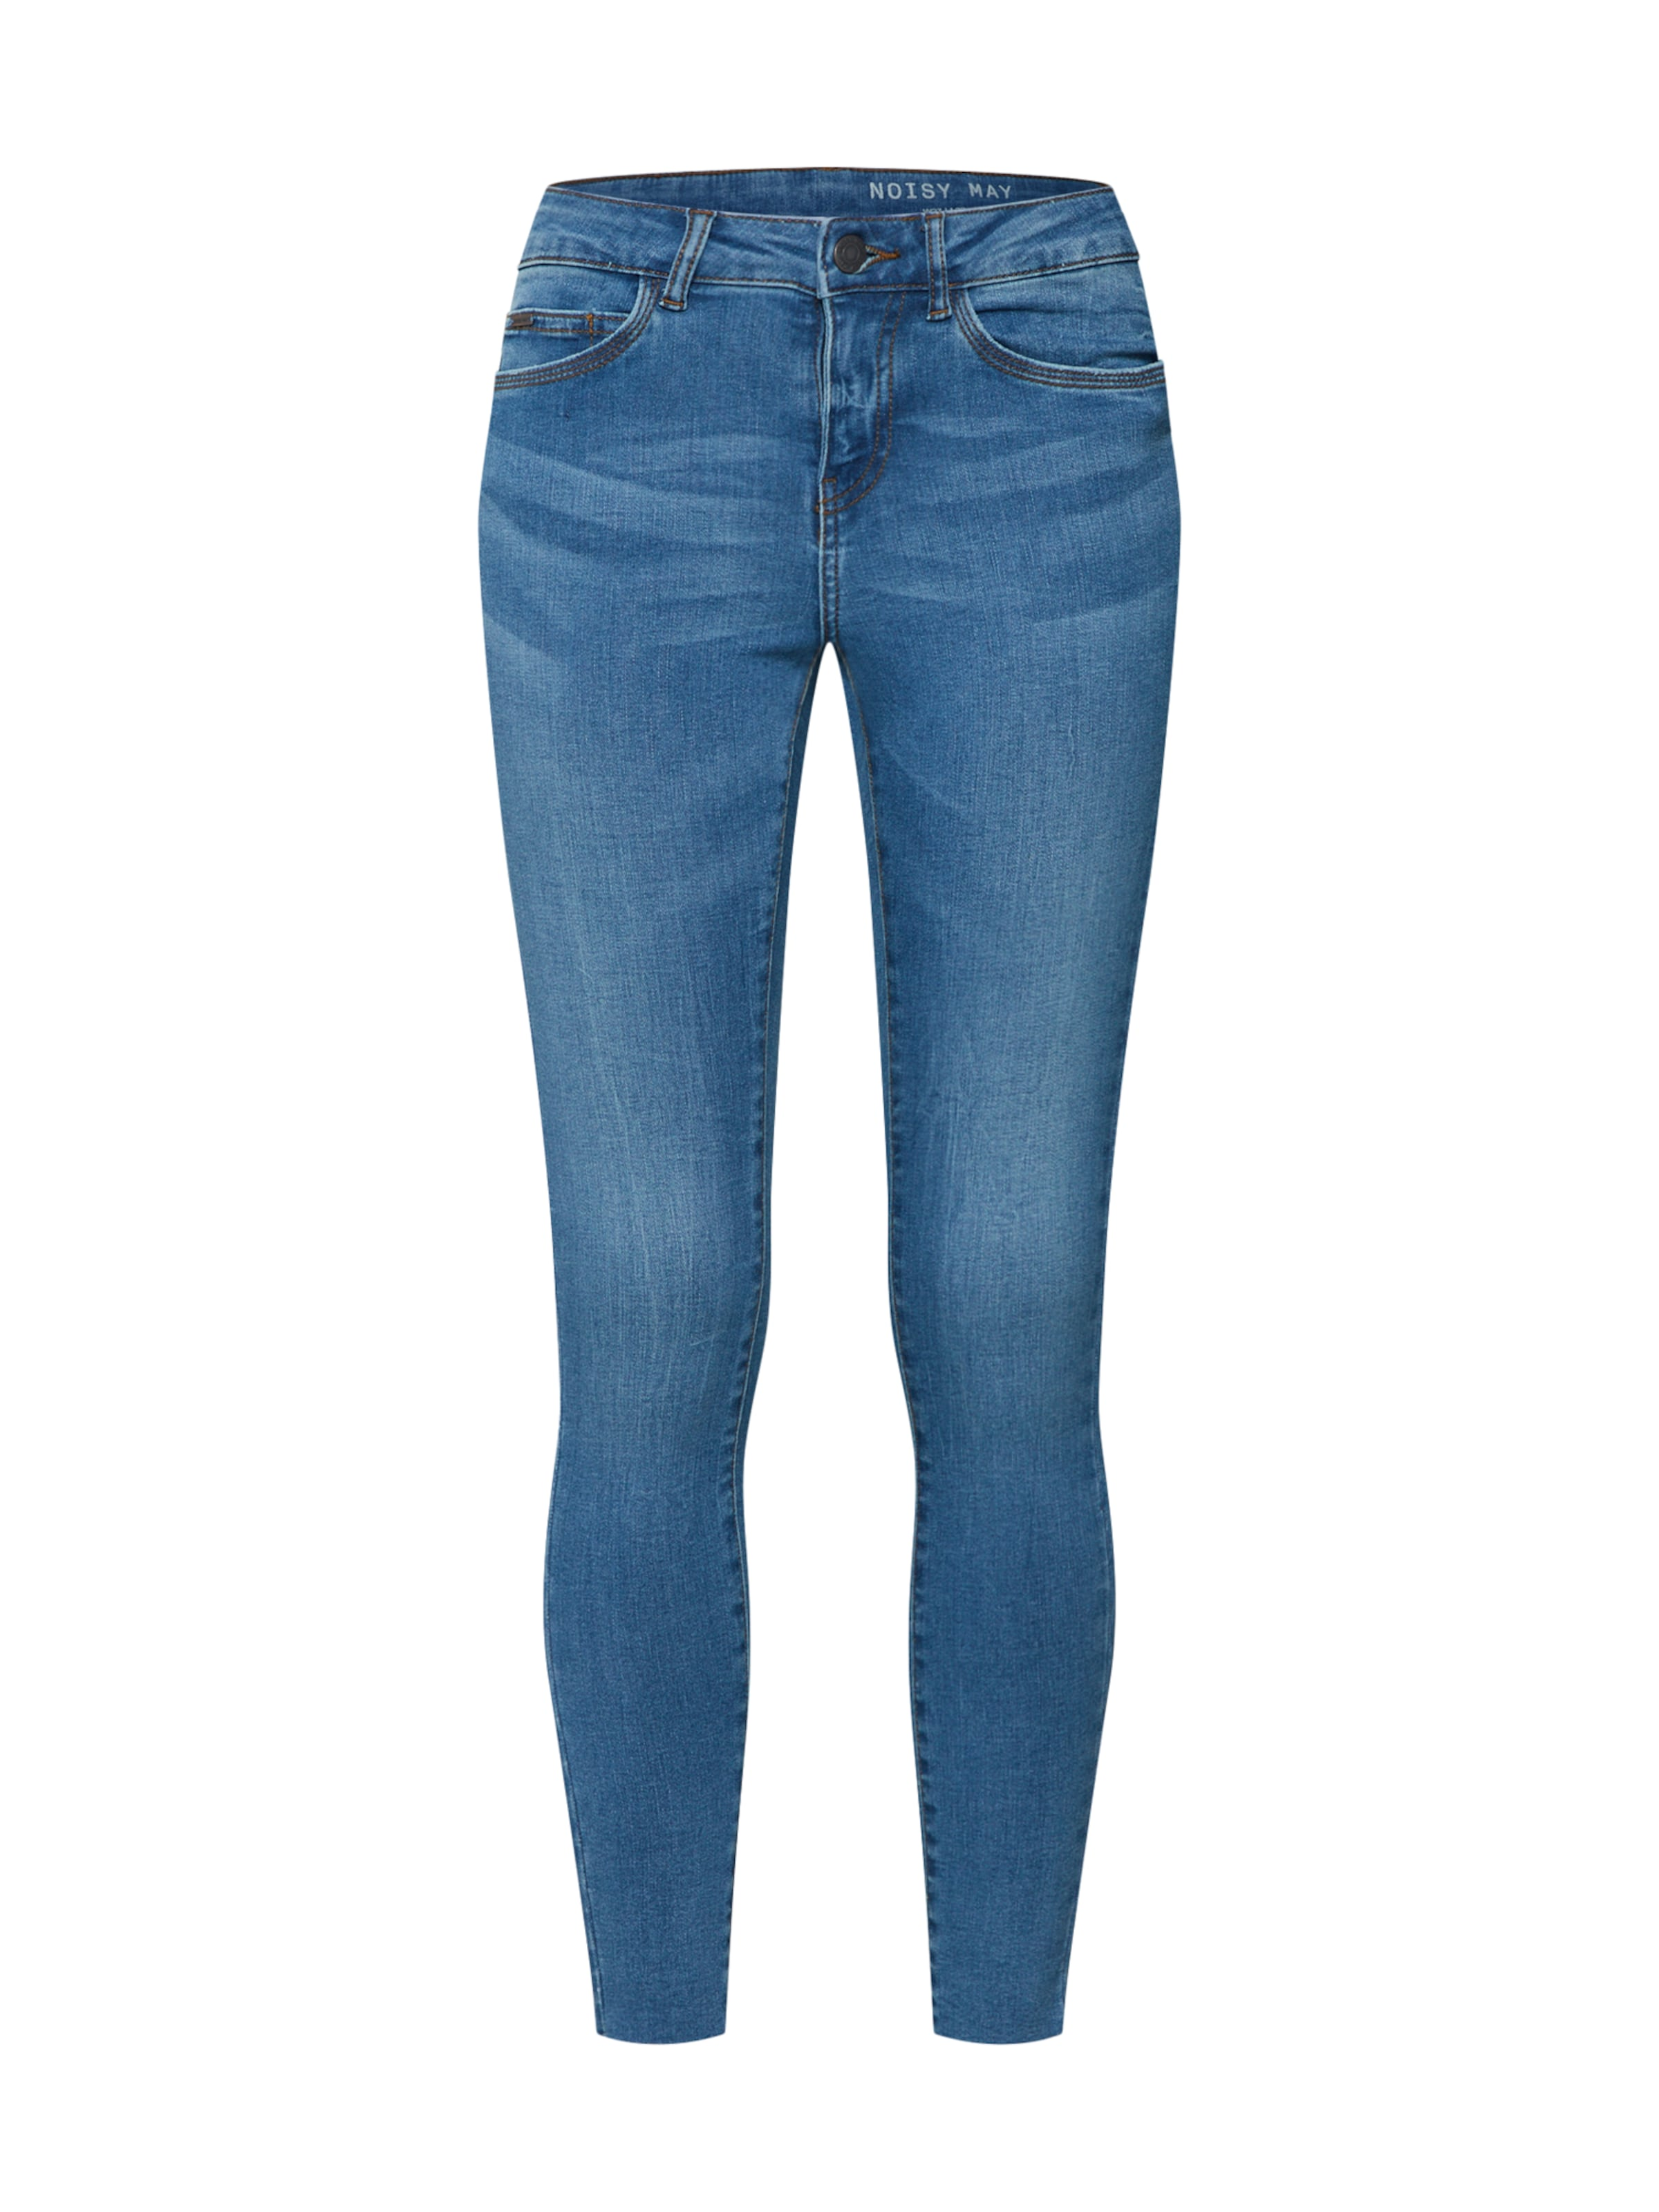 Noisy Bleu Denim Jean May En qSpMGUjLzV